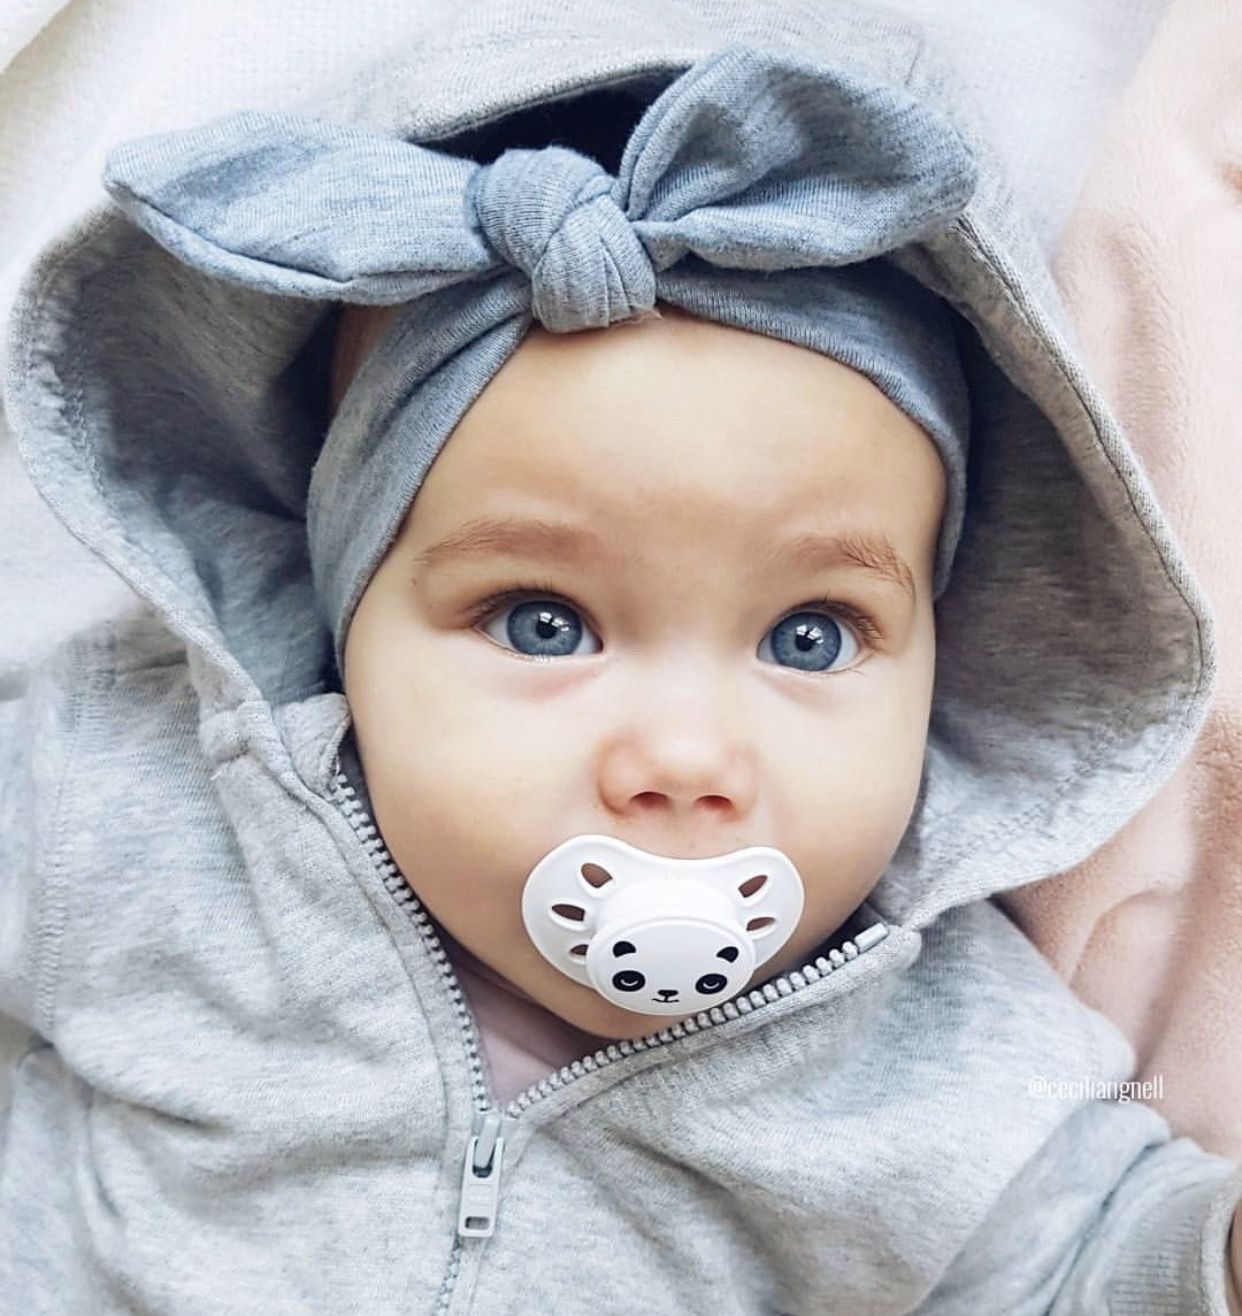 beautiful baby girl with amazing blue eyes | baby girl | pinterest